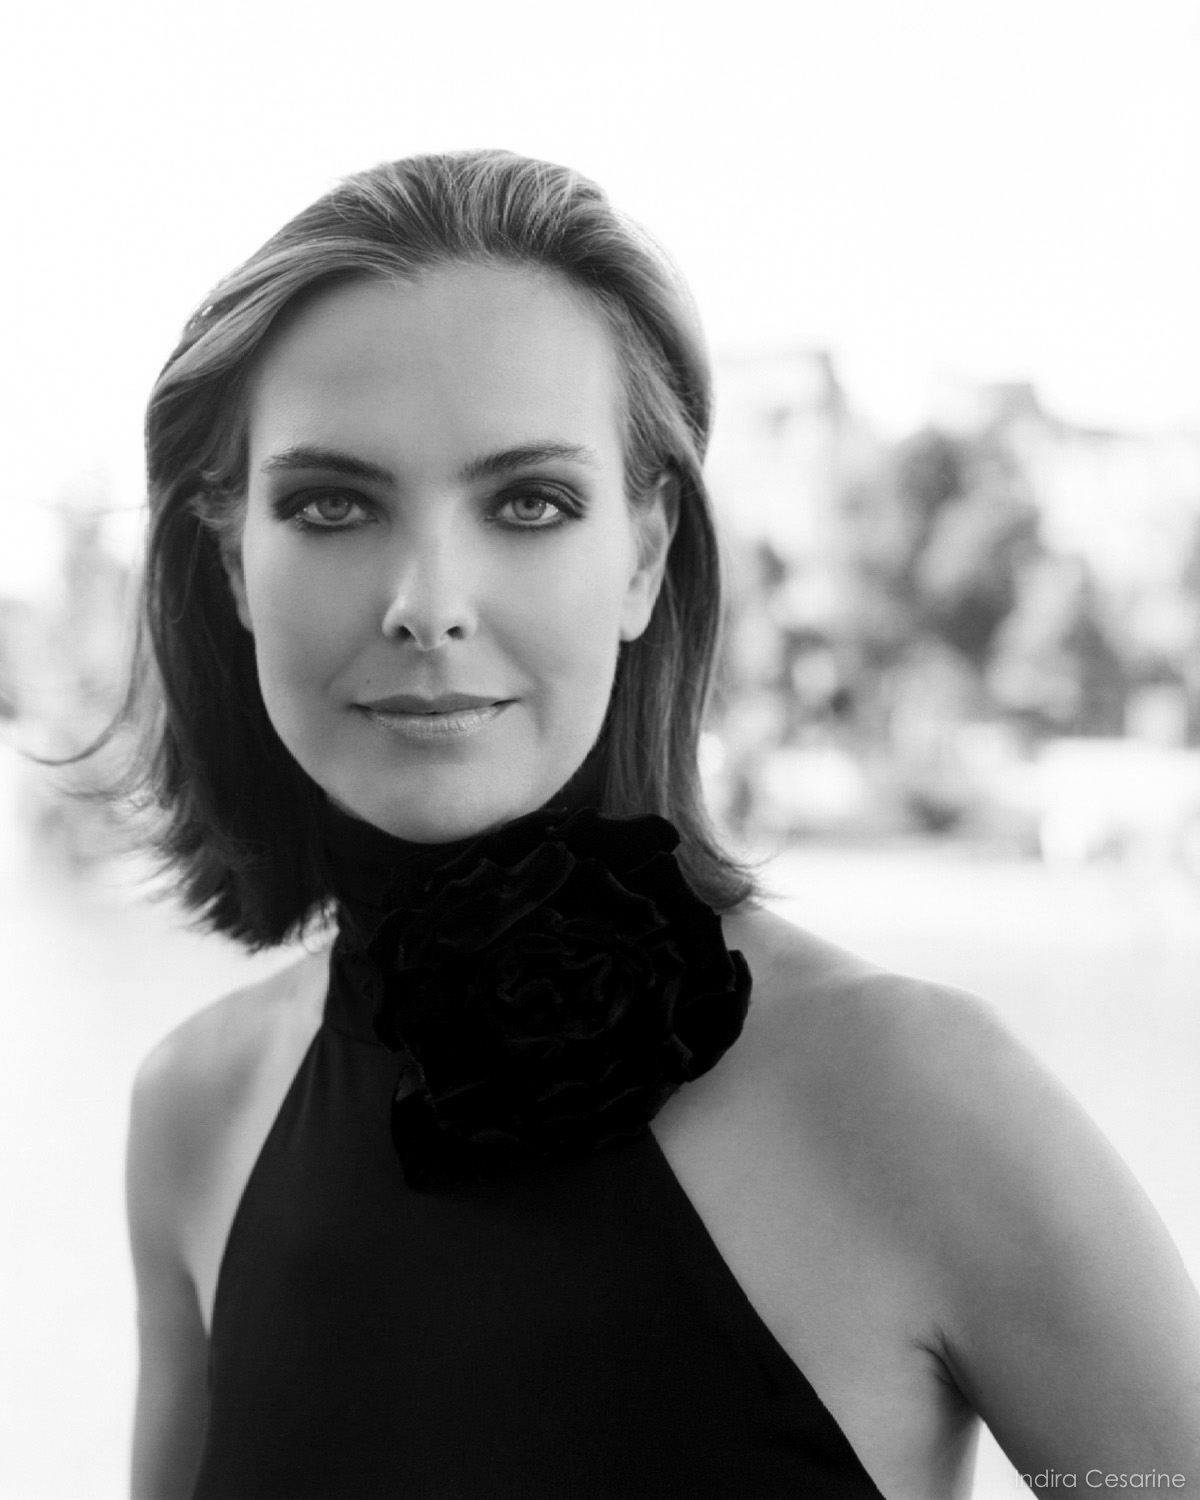 CAROLE-BOUQUET-Photography-by-Indira-Cesarine-007-BW.jpg